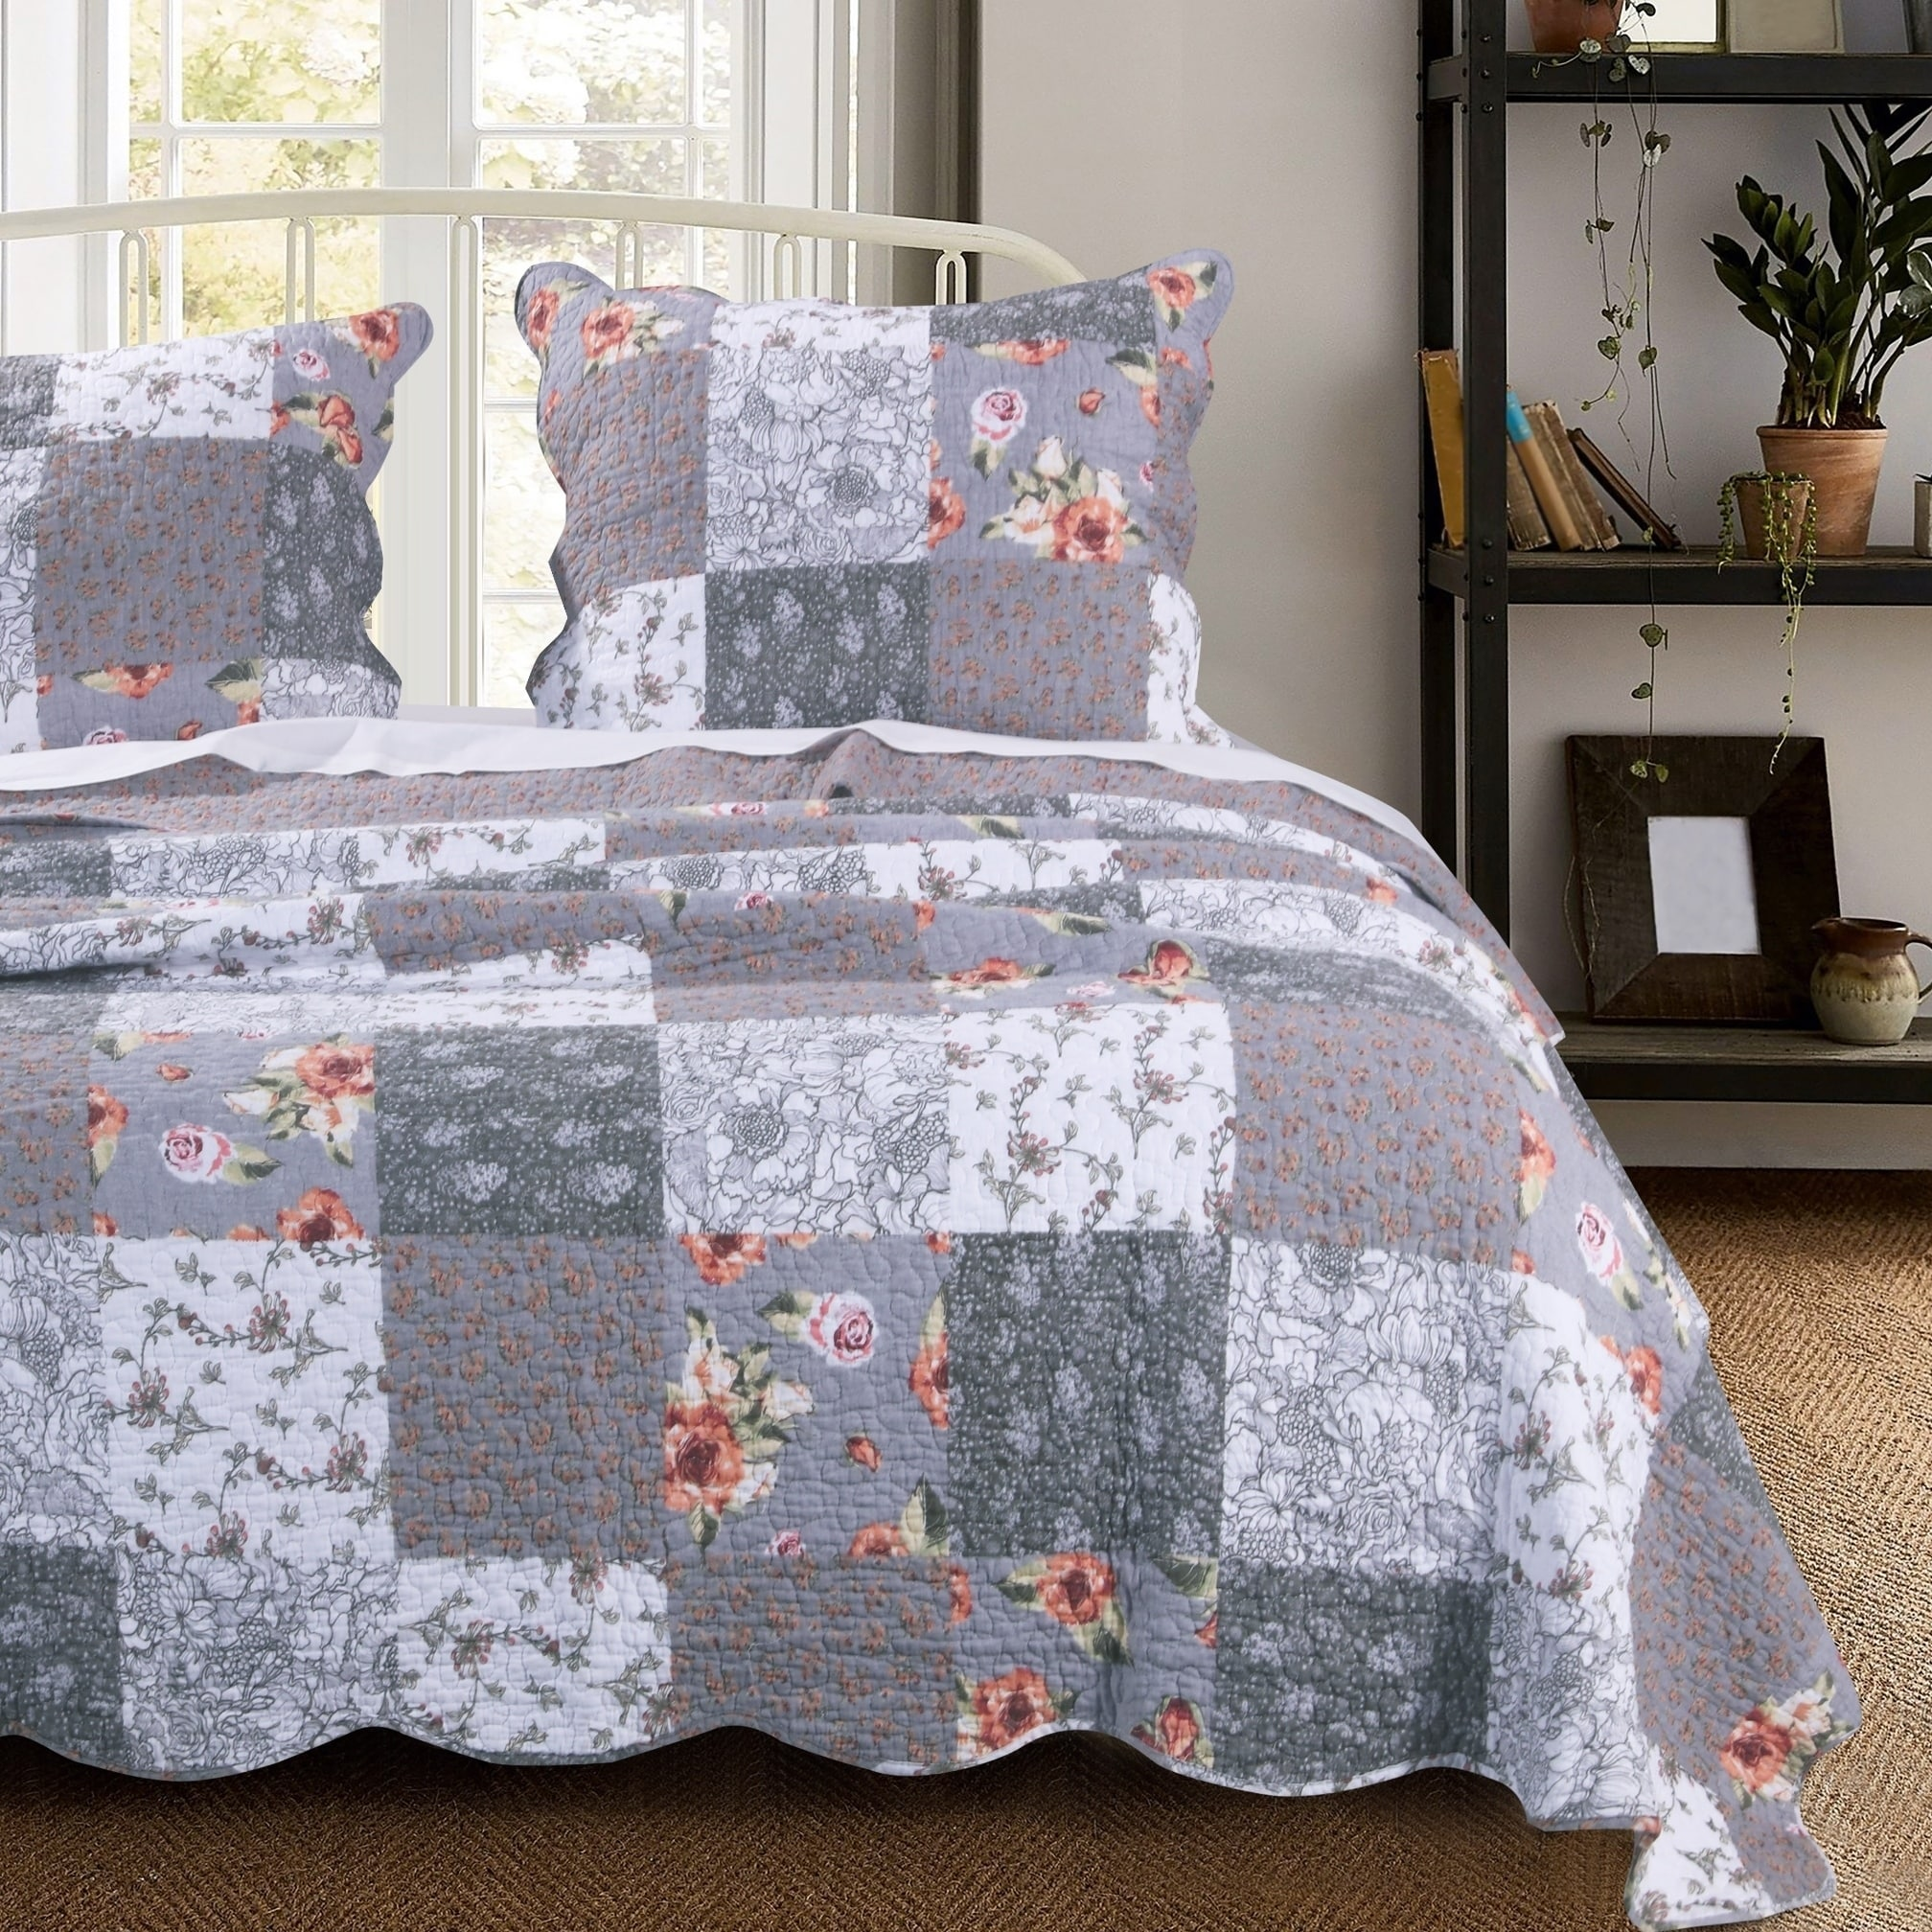 Barefoot Bungalow Giulia Reversible Oversized Cotton Quilt Set Grey 3 Piece Full Queen Califor Cotton Quilt Set Quilted Pillow Shams